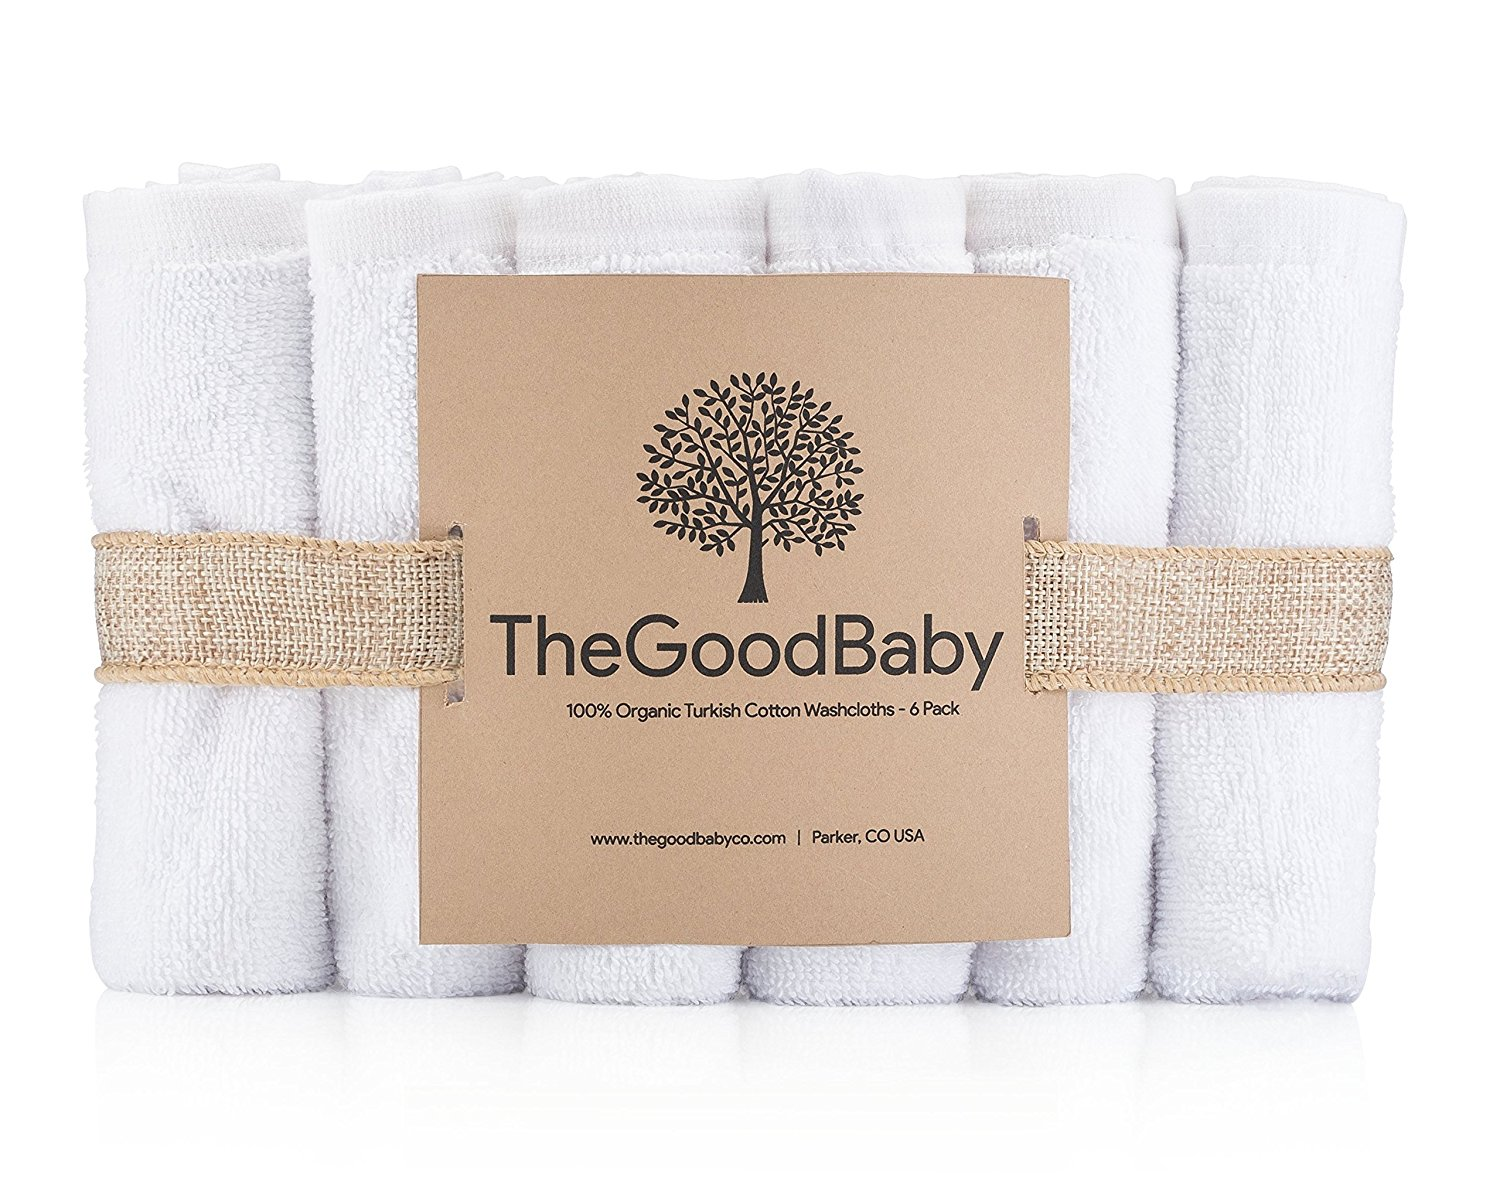 100% Organic Turkish Cotton Baby Washcloths by The Good Baby 6 Pack by The Good Baby